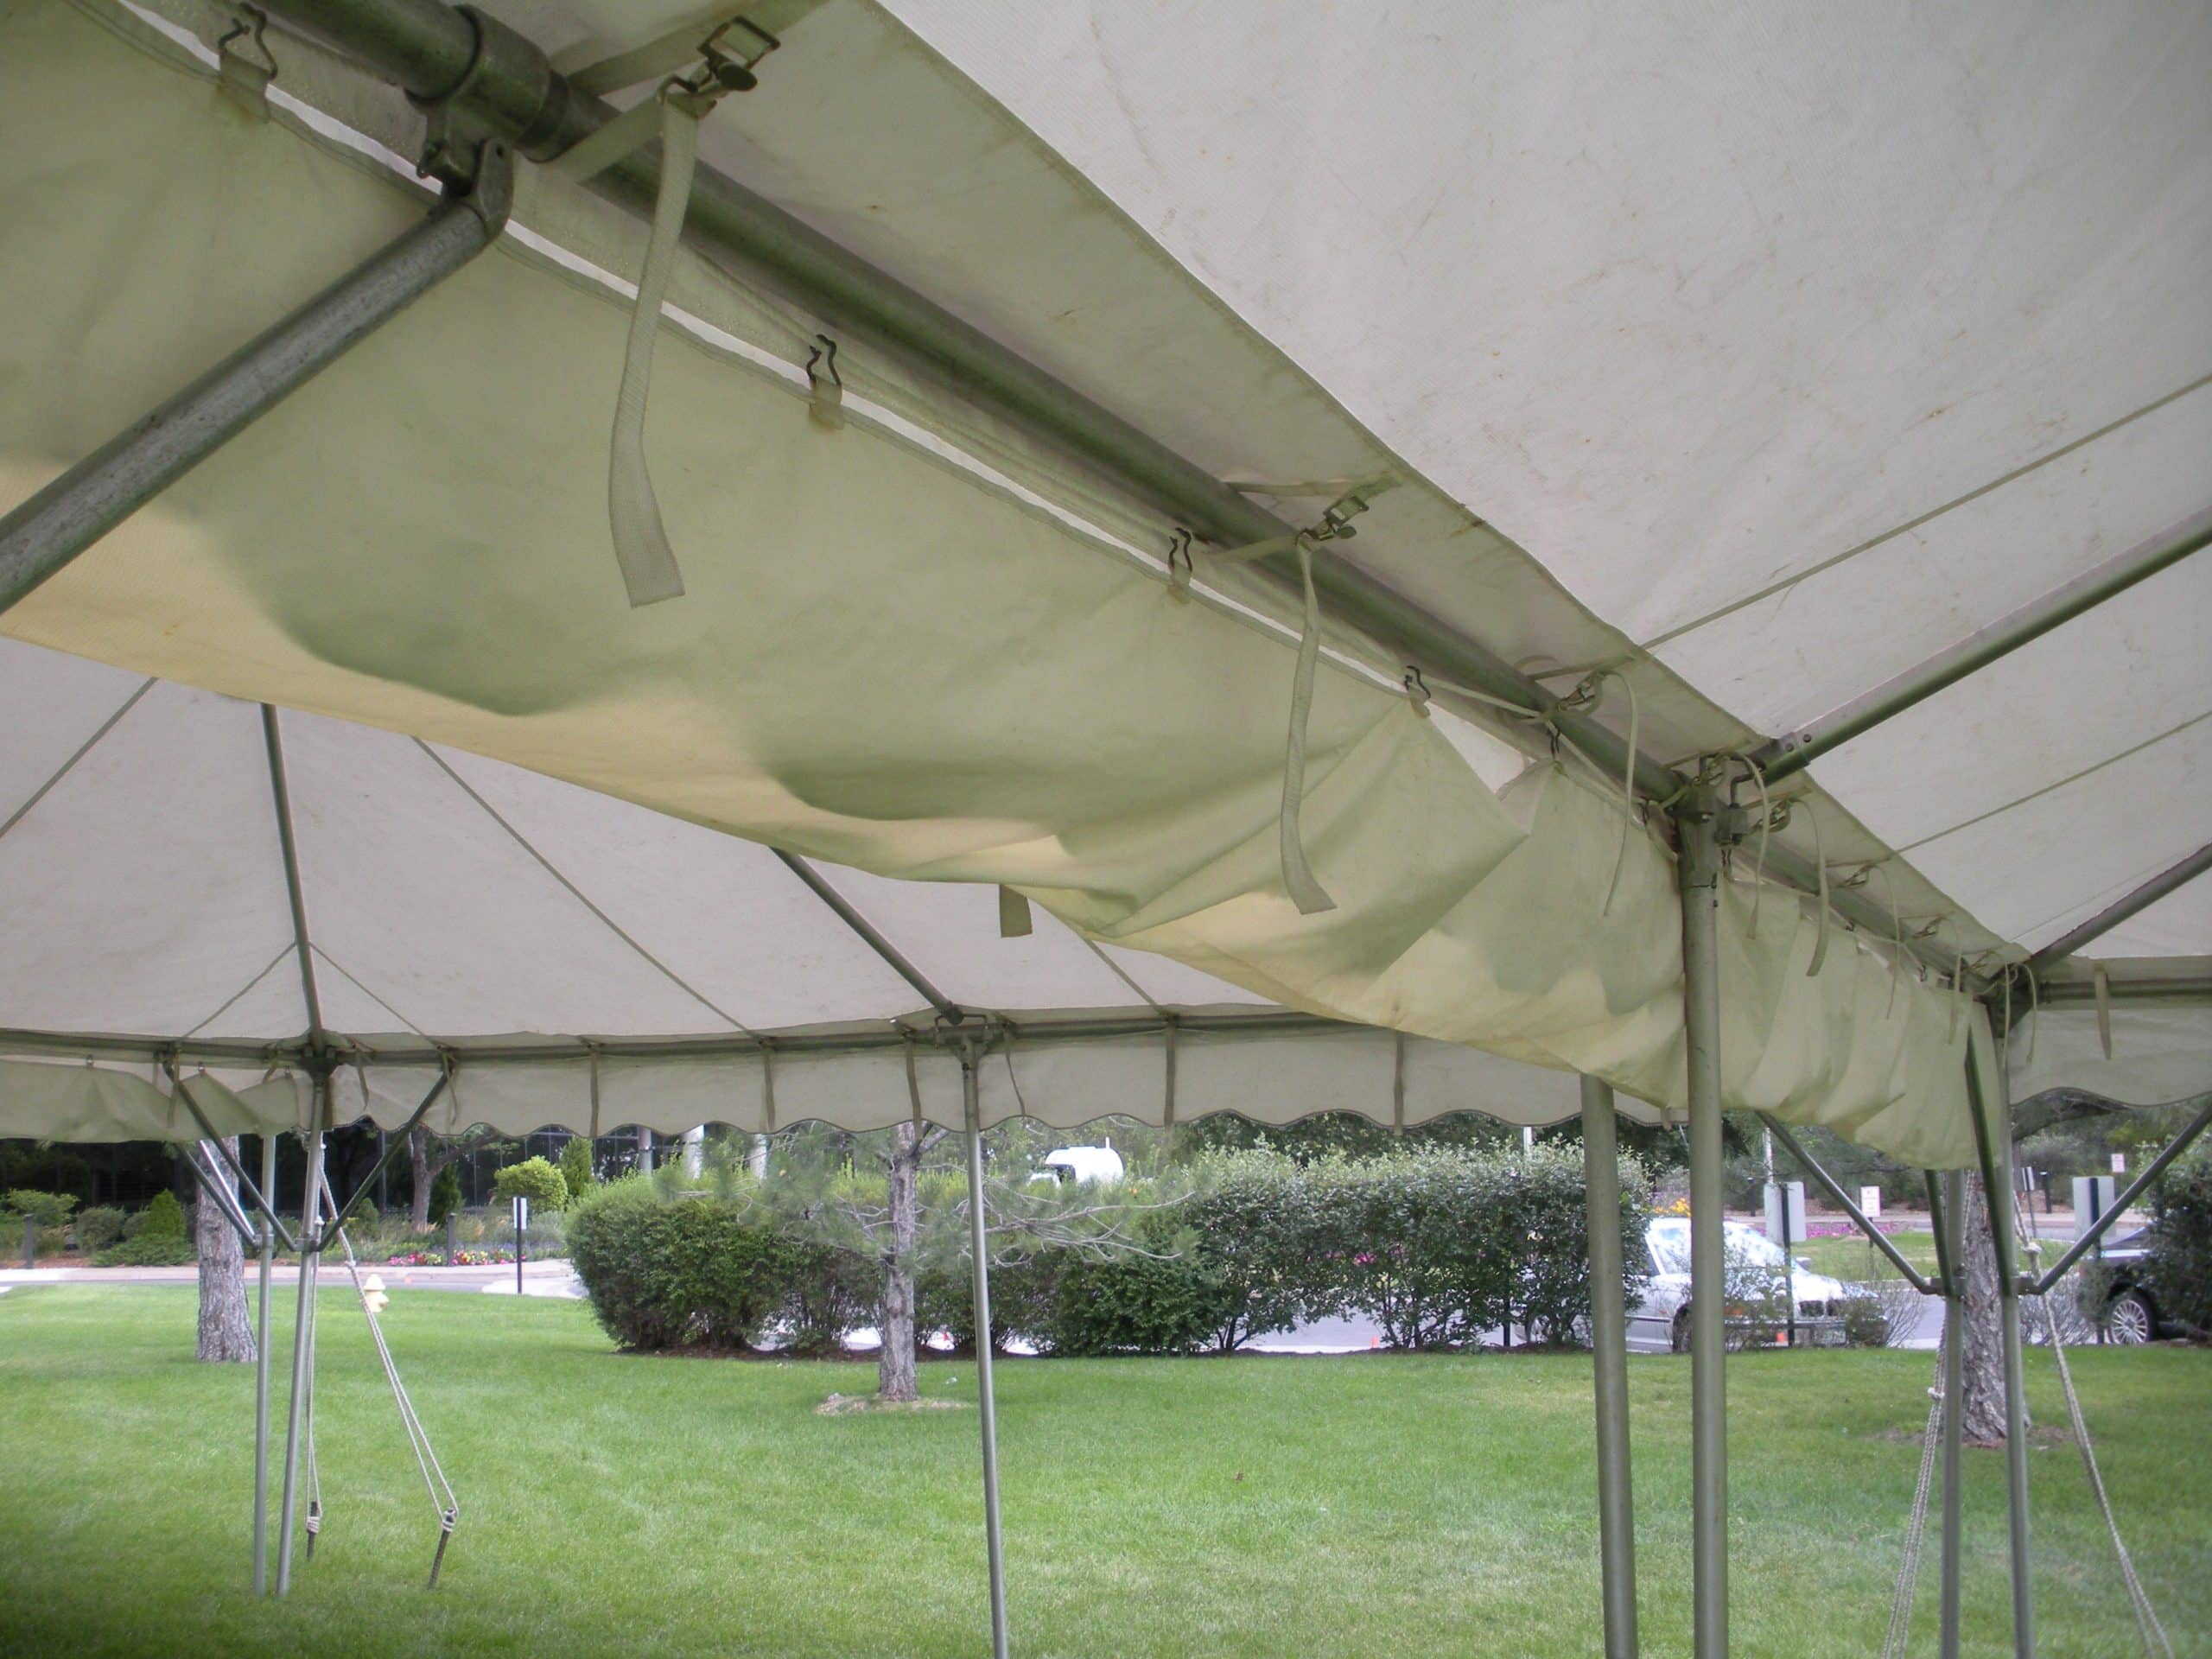 Canopy Frame Tent Rain Gutter & Rent some canopy rain gutters for your next party at All Seasons ...